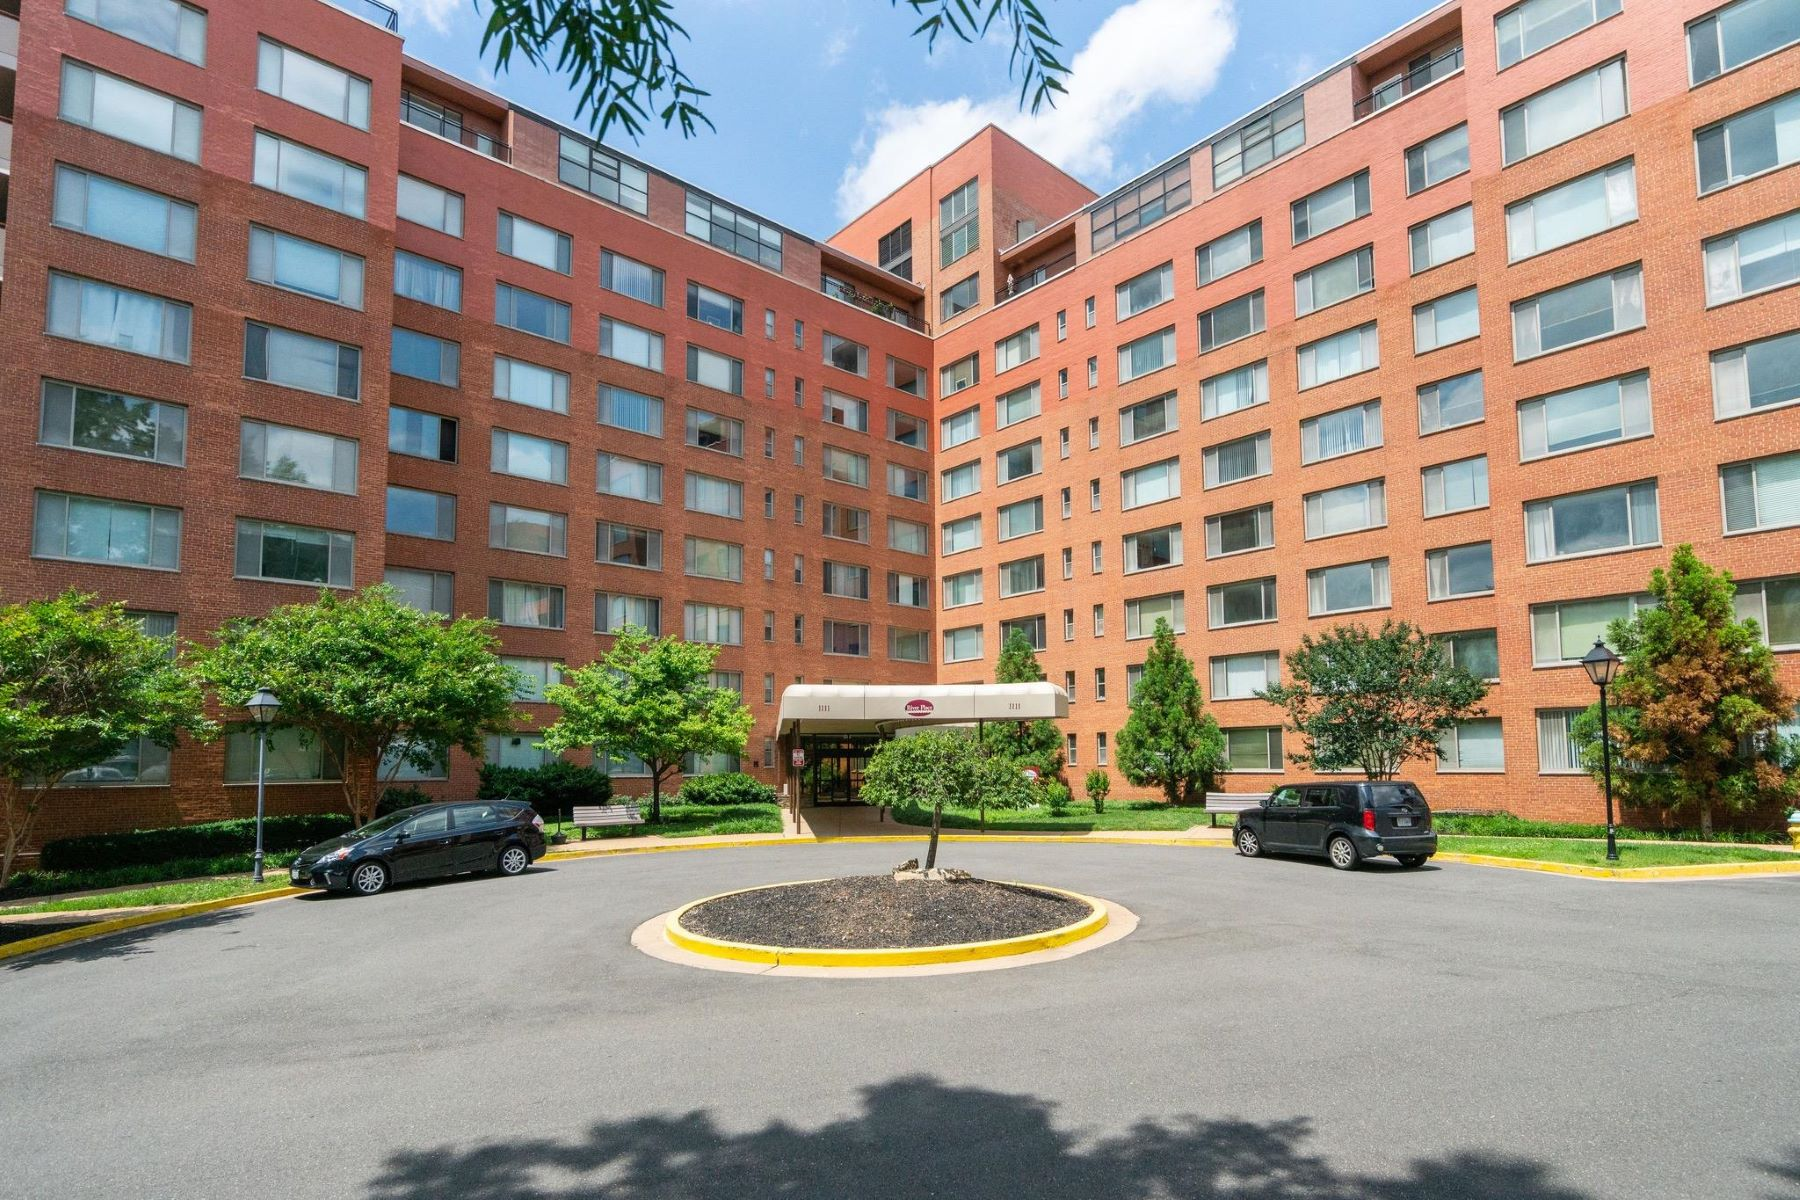 Other Residential for Rent at 1111 Arlington Blvd #217 1111 Arlington Blvd #217 Arlington, Virginia 22209 United States